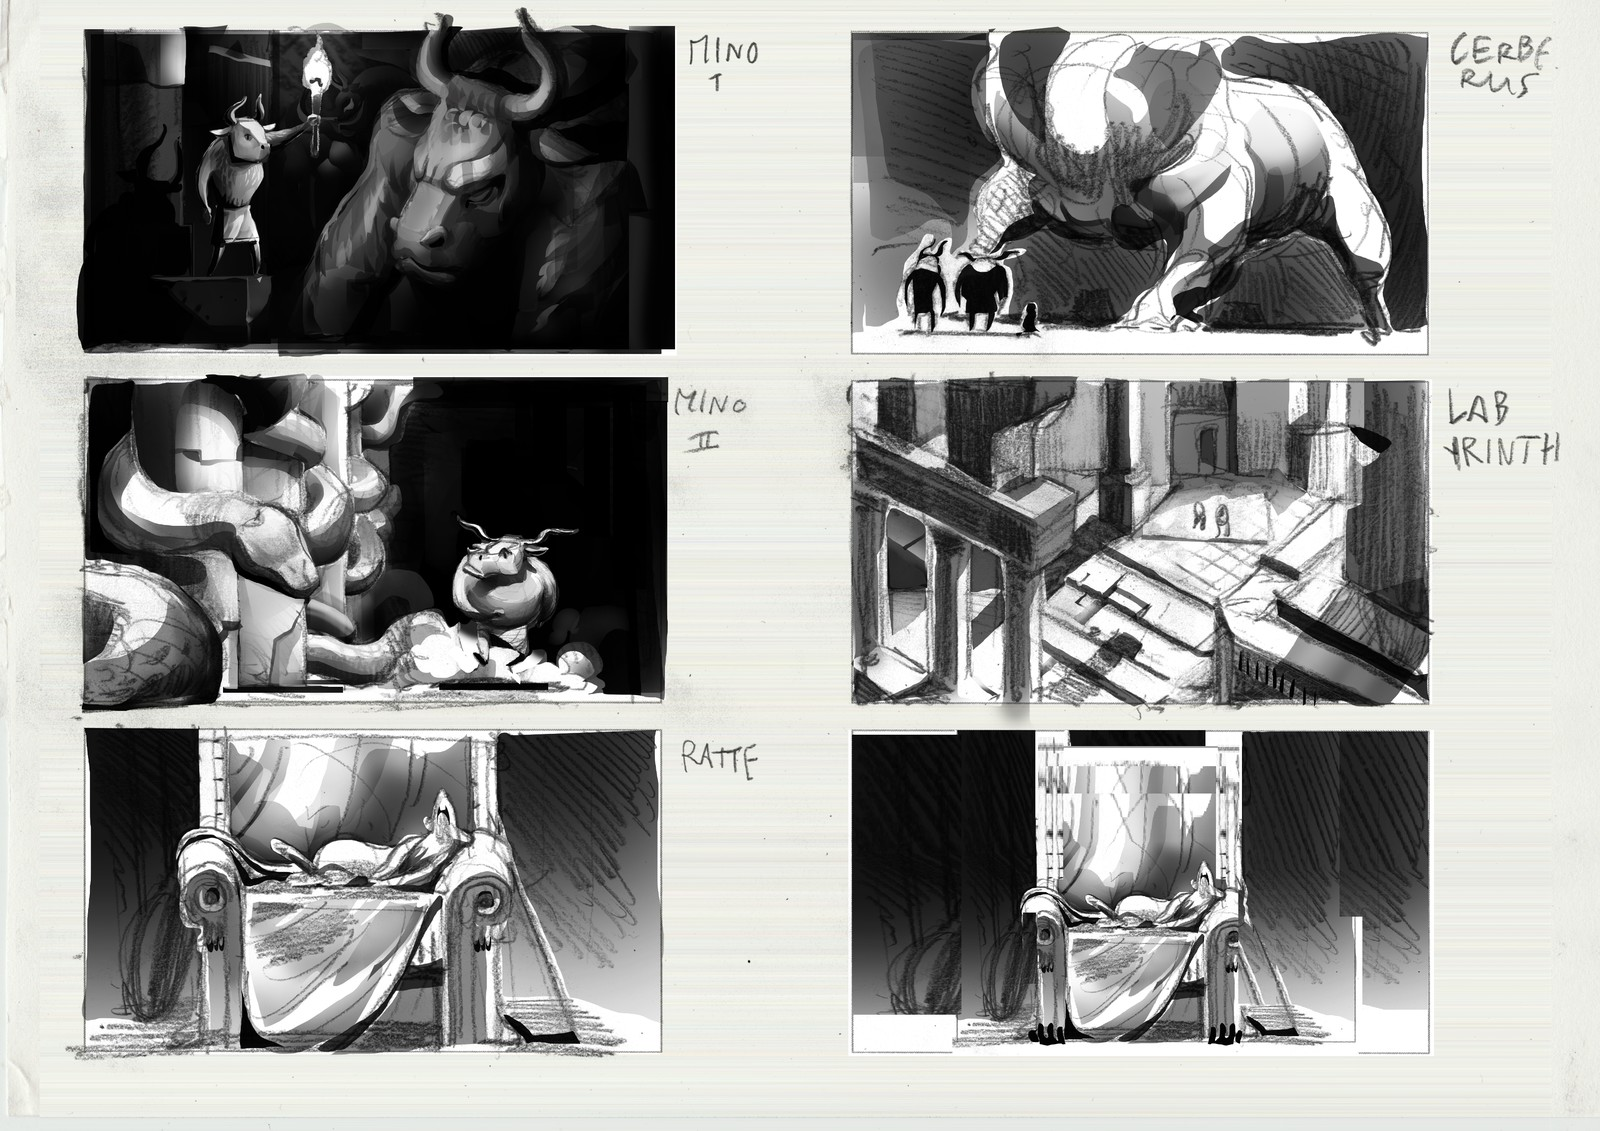 Some sketches of illustrations I created during the development.